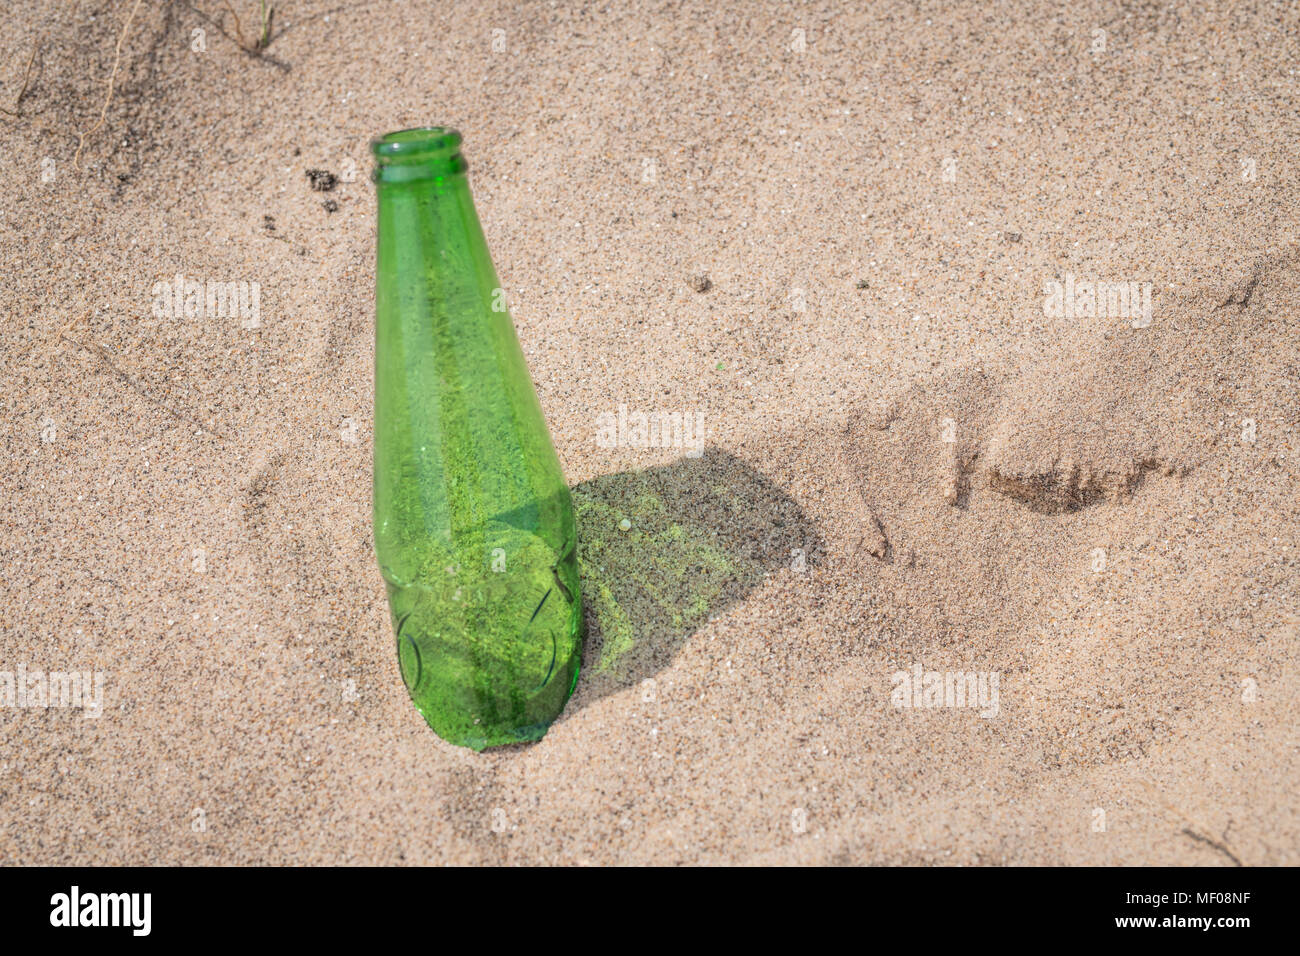 Green bottle discarded on beach - Stock Image